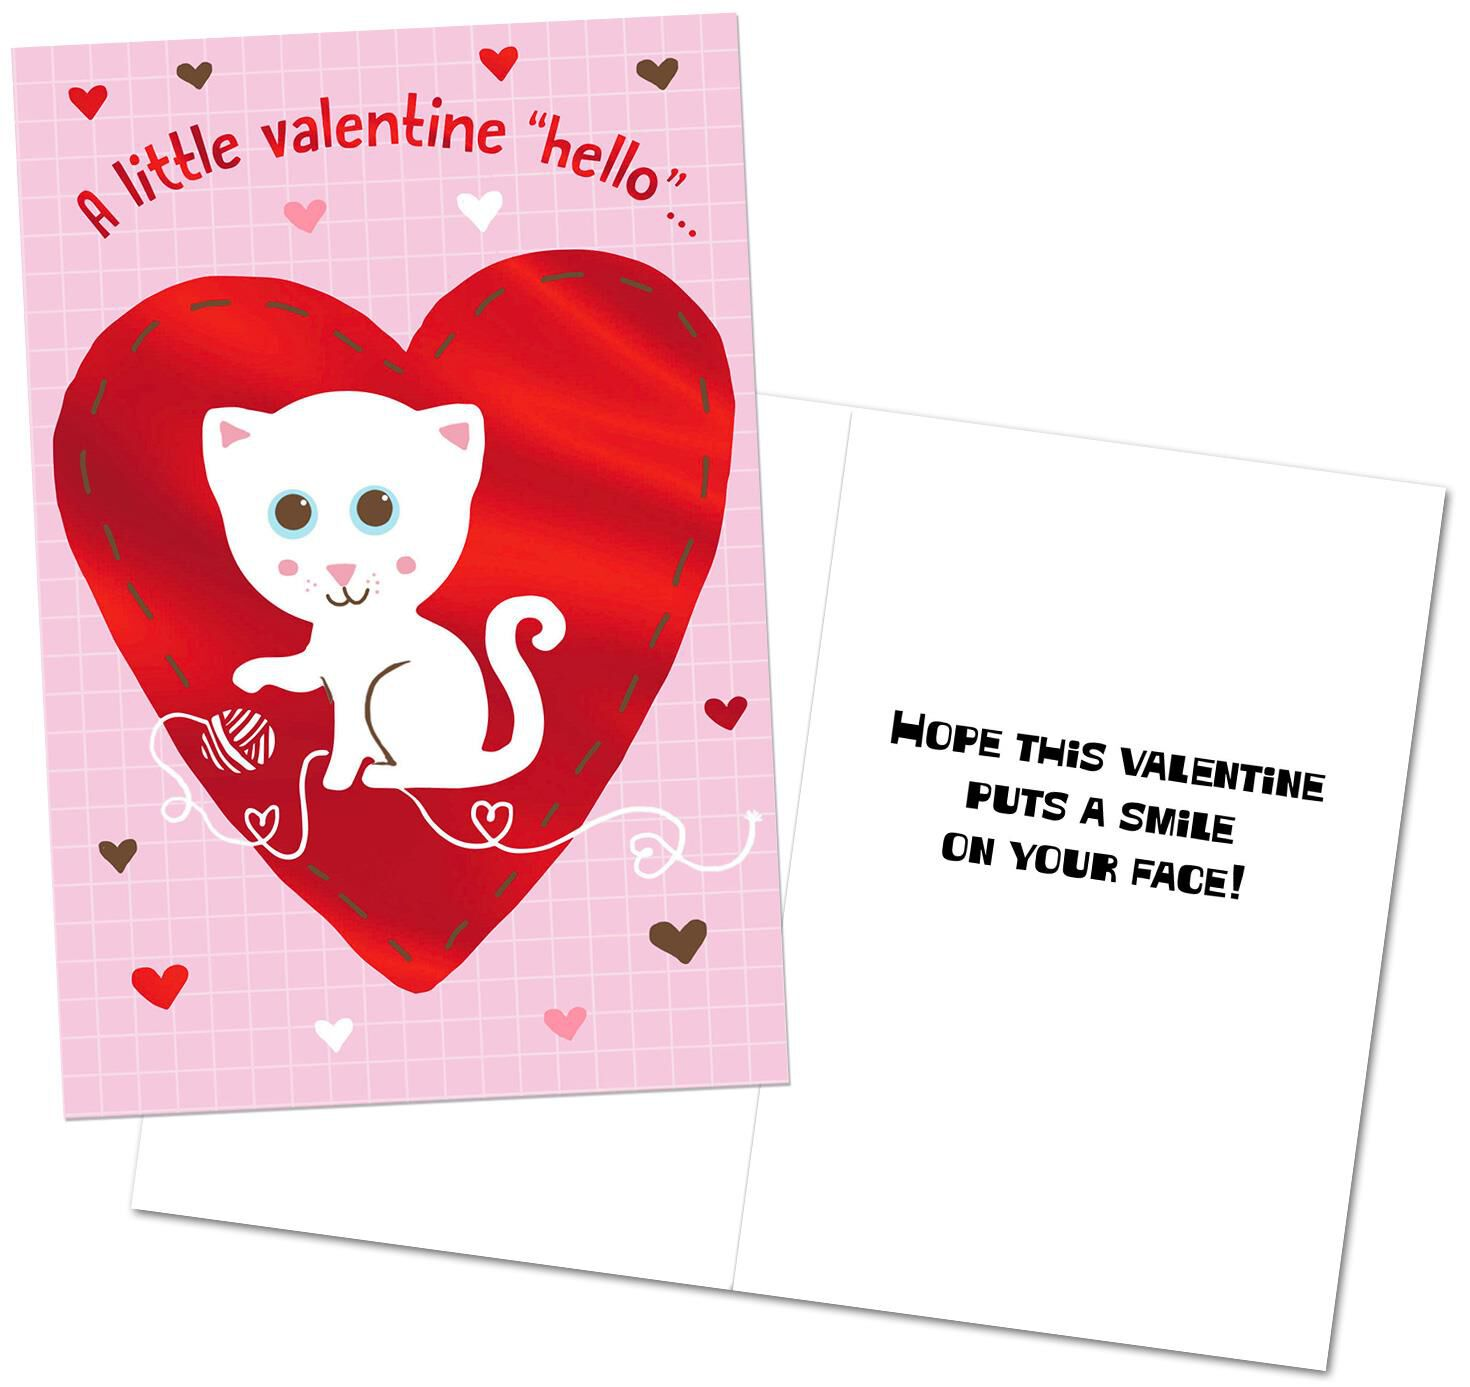 Dog And Cat Valentines Day Cards   Cat Valentine Cards